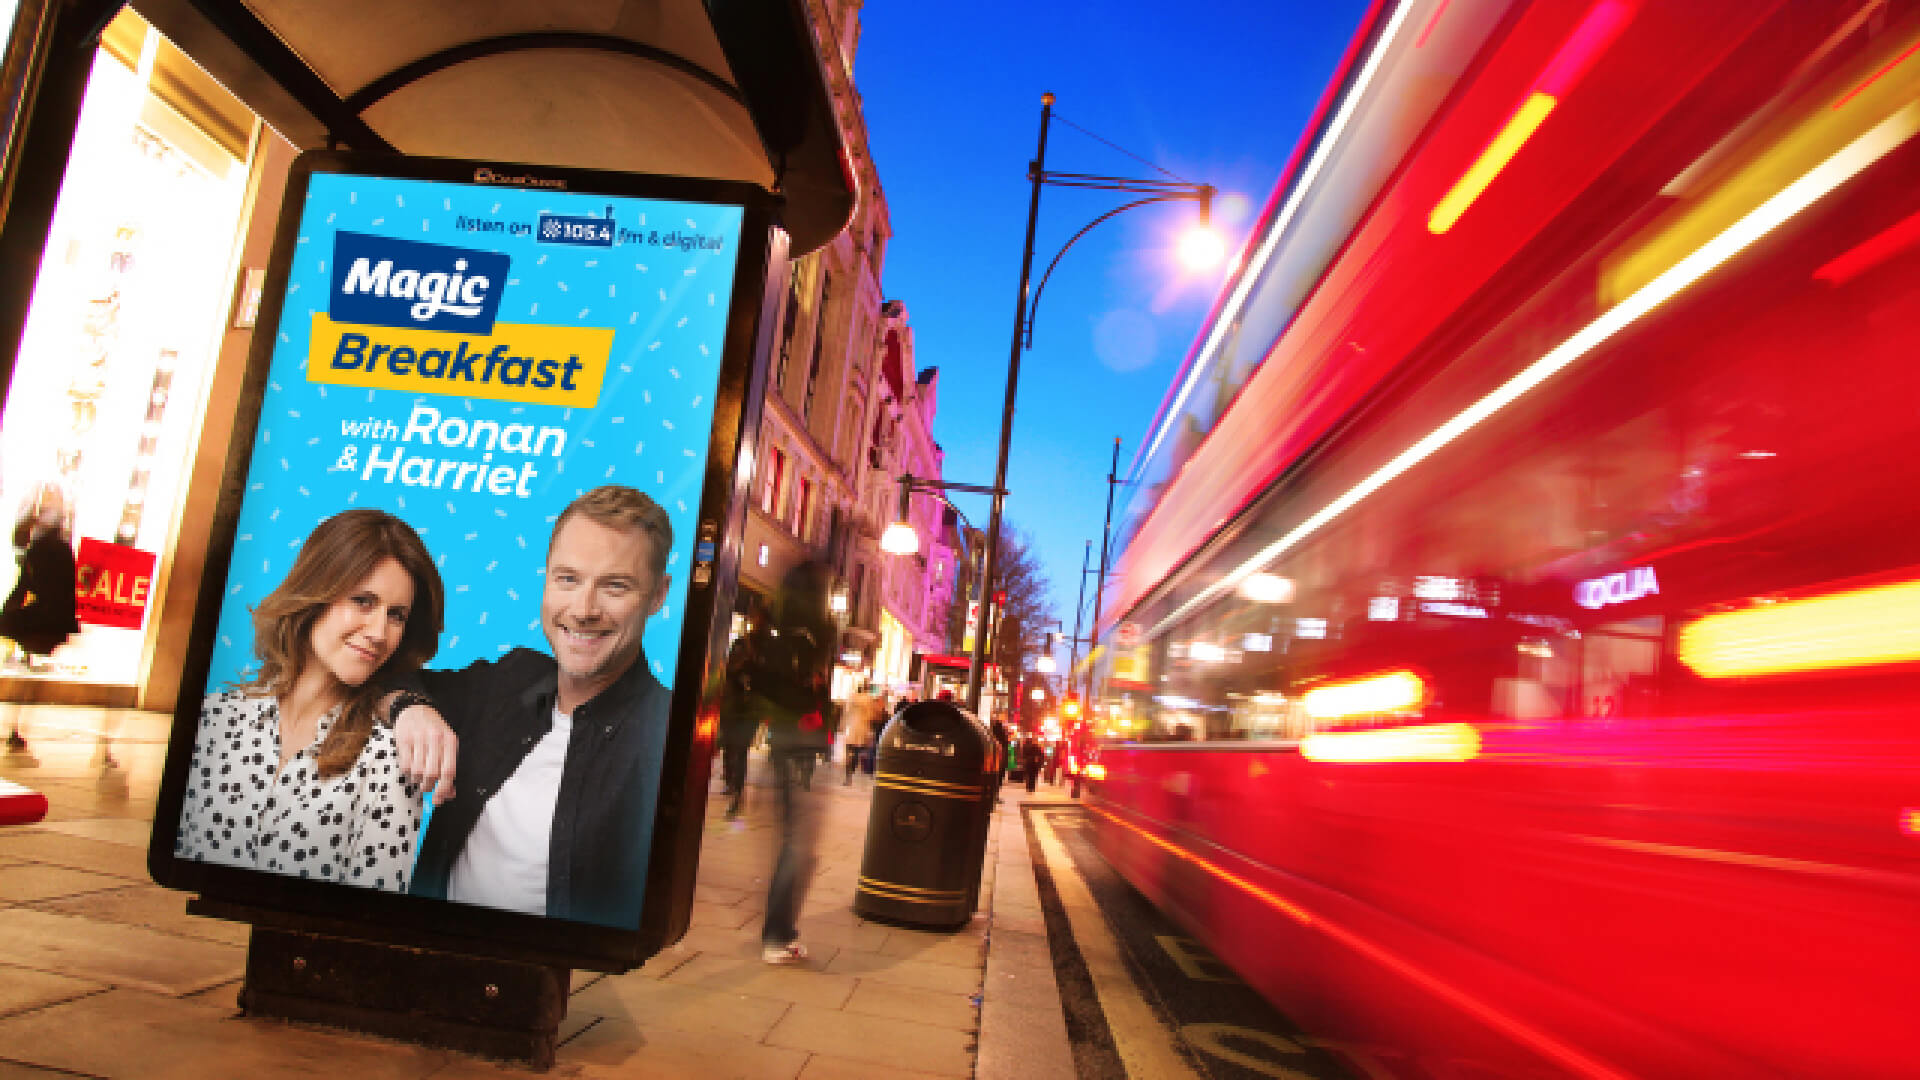 Magic radio brand launch new show